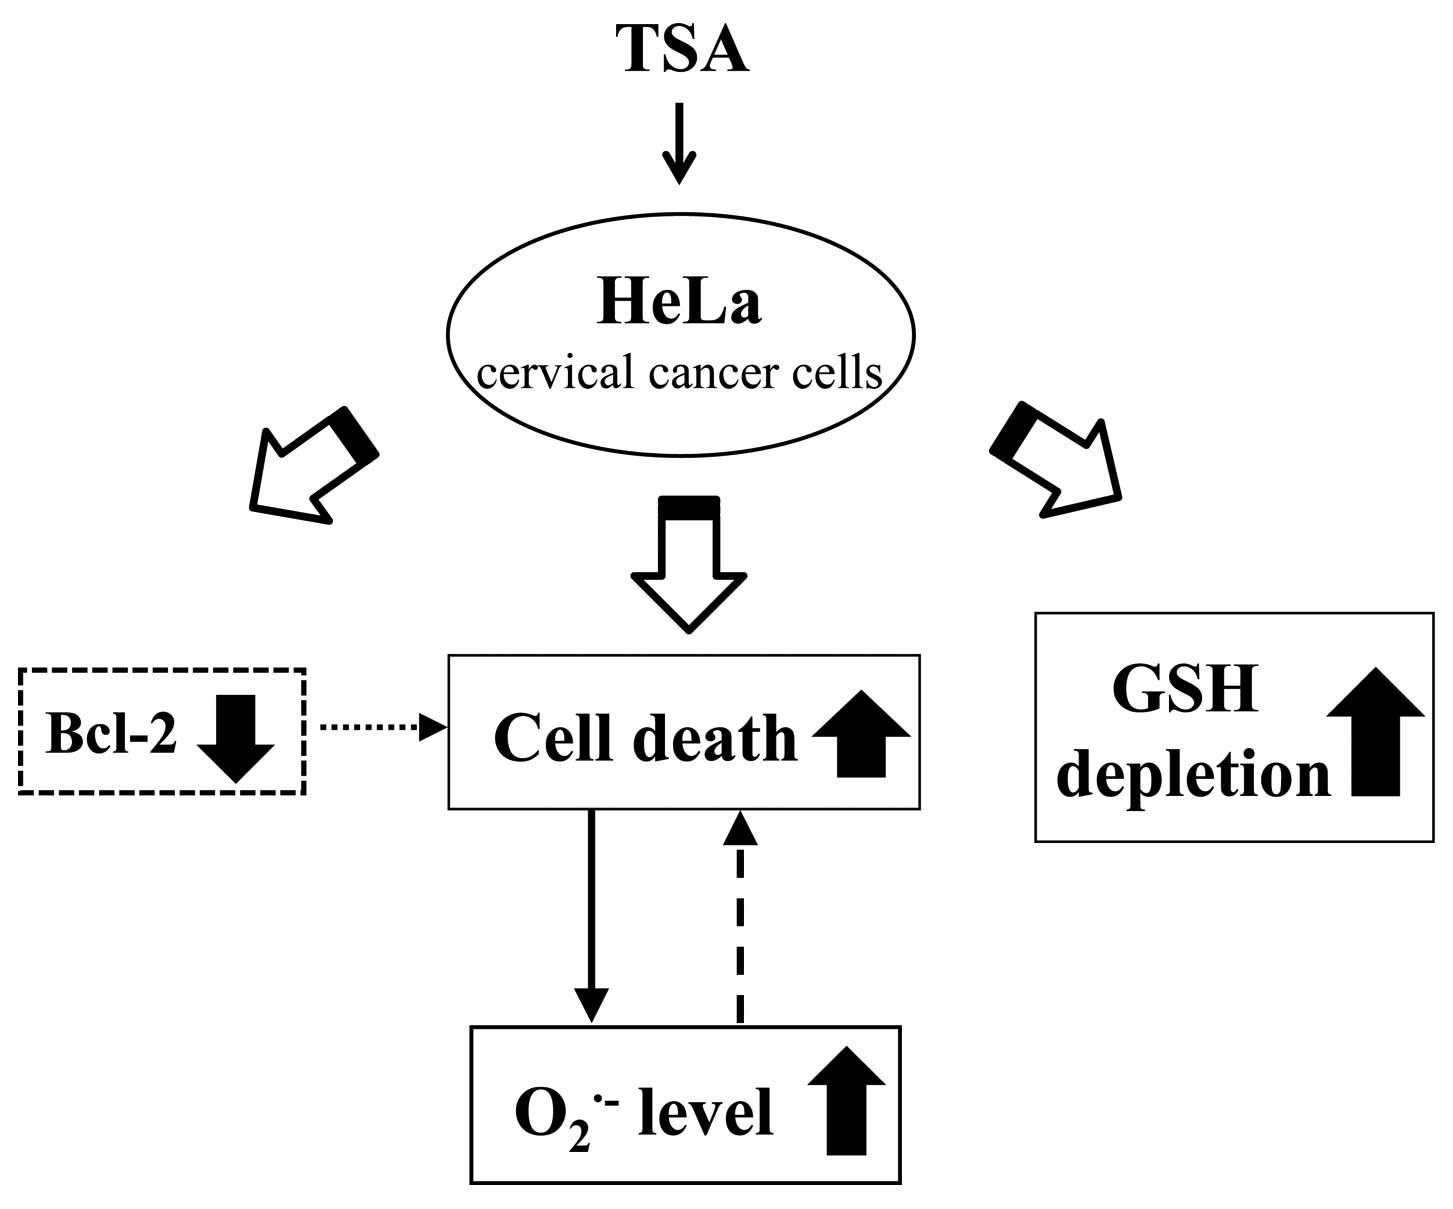 trichostatin a induces apoptotic cell death of hela cells